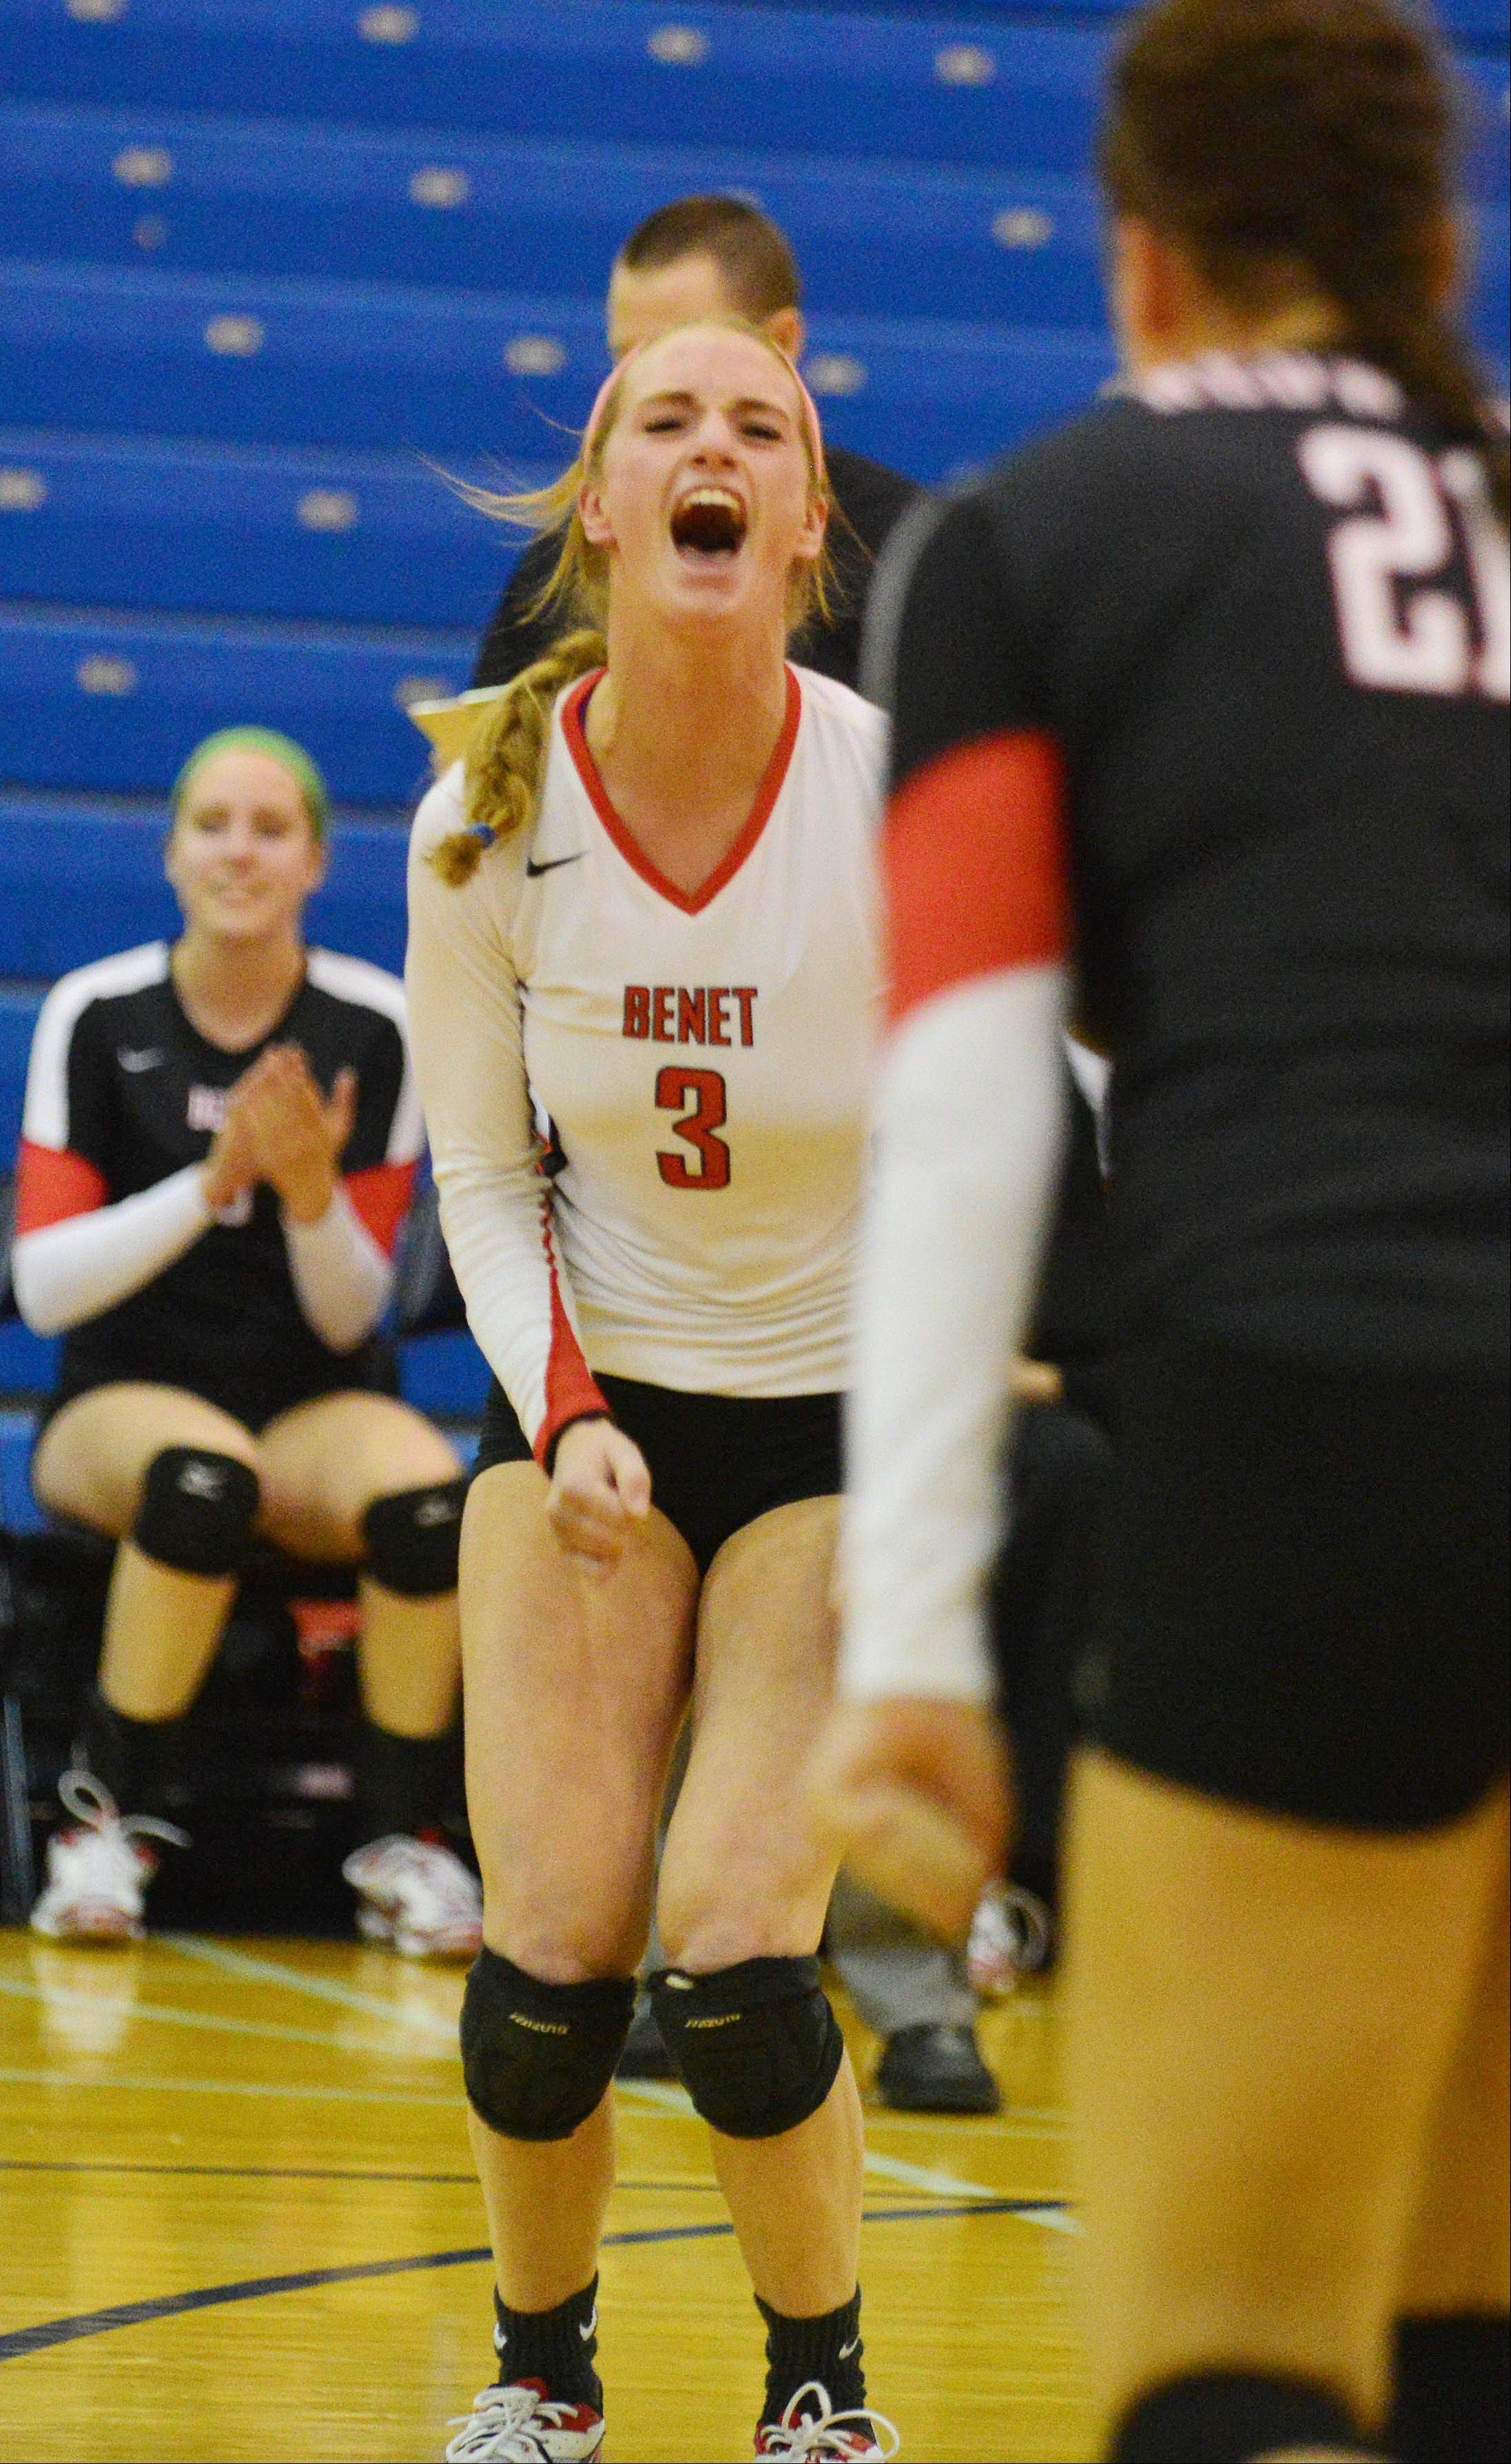 Caroline Wolf of Benet reacts to the big win during the Benet vs. Naperville North at Class Plainfield South girls volleyball sectional final Thursday.